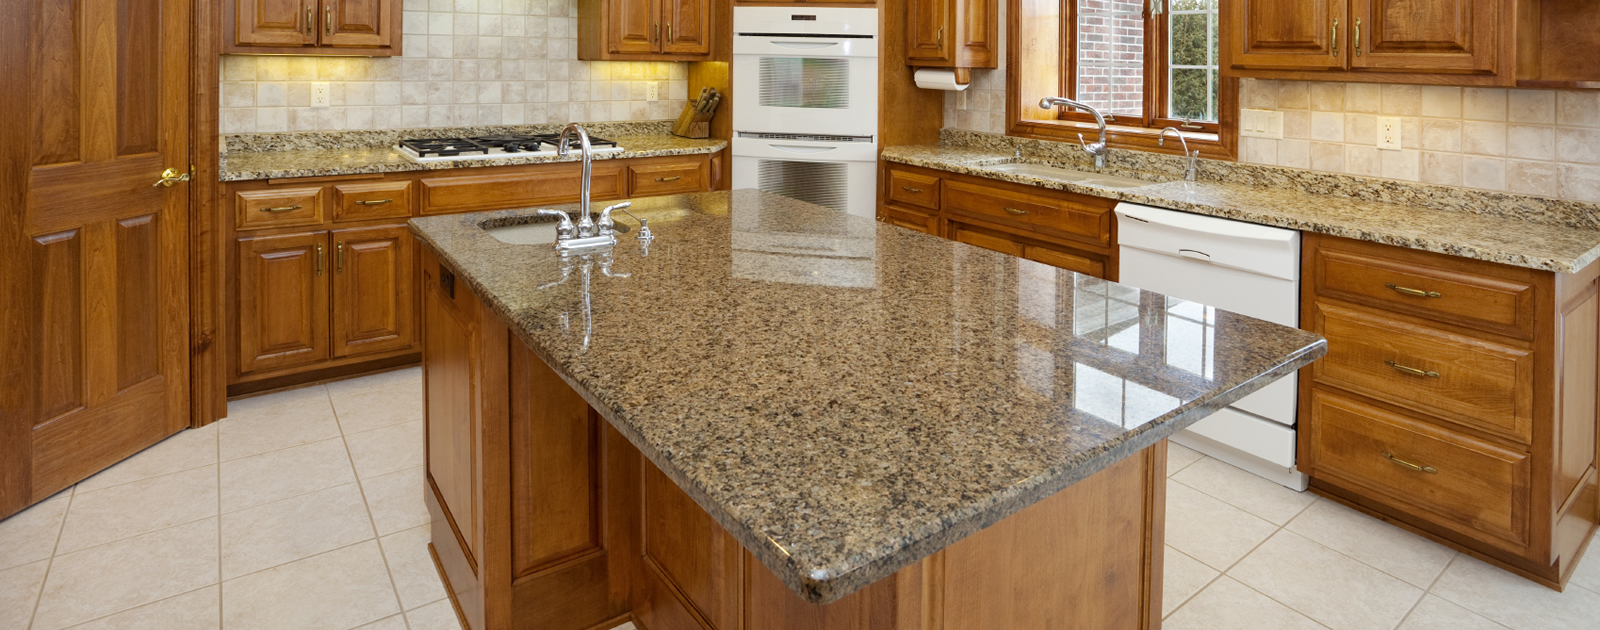 Etonnant Granite Countertops Chicago